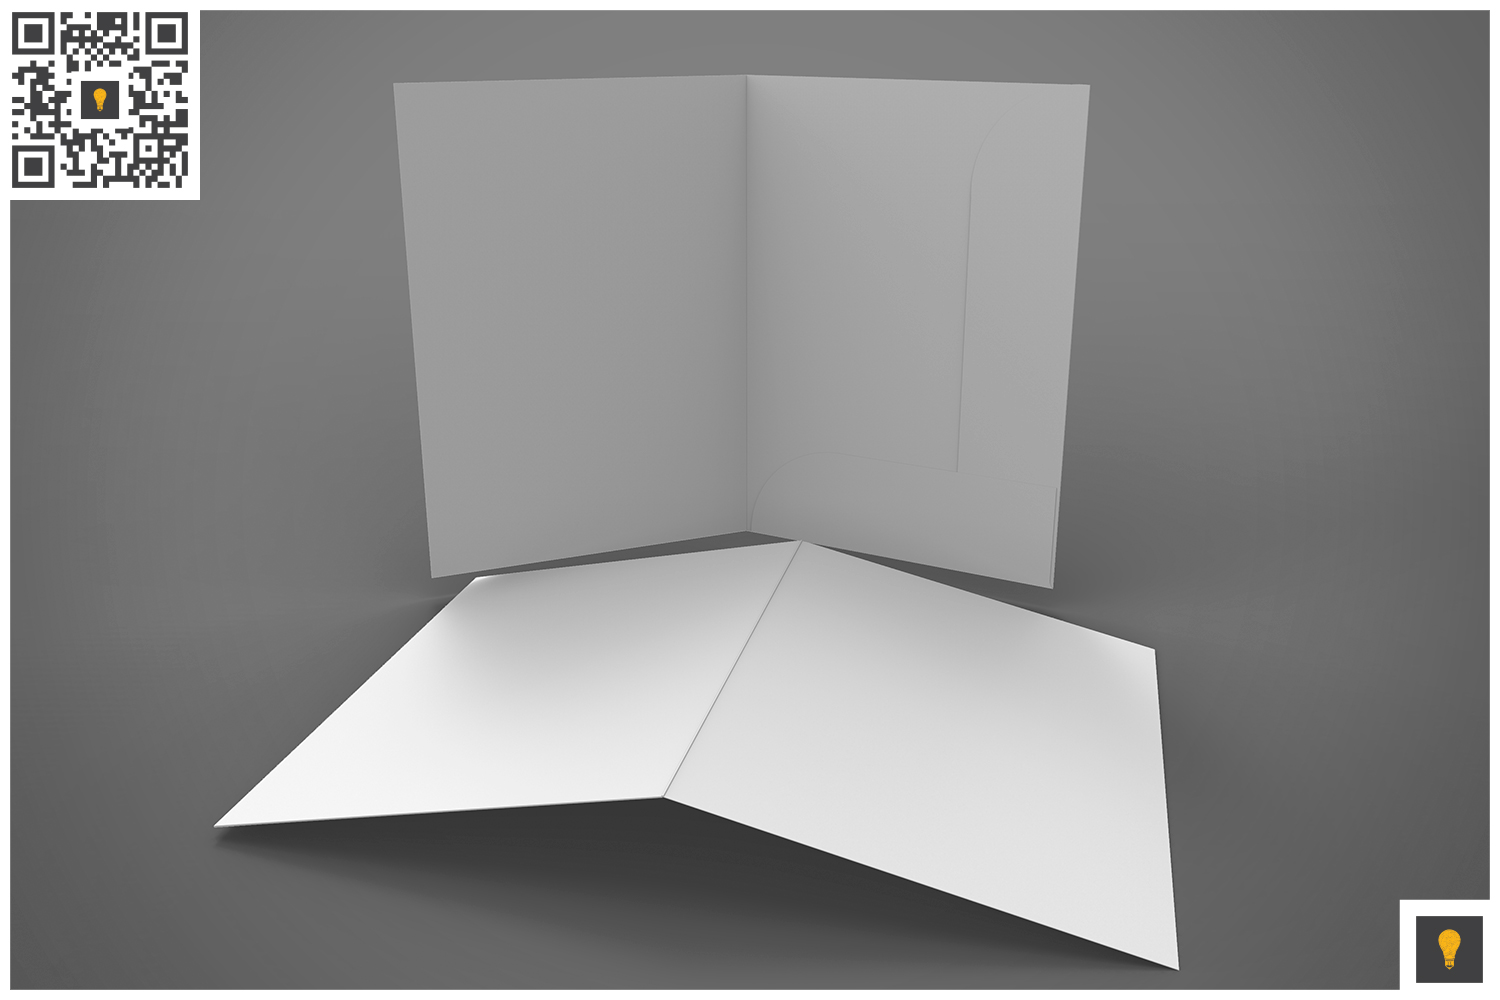 Branding Stationary 3D Render example image 9